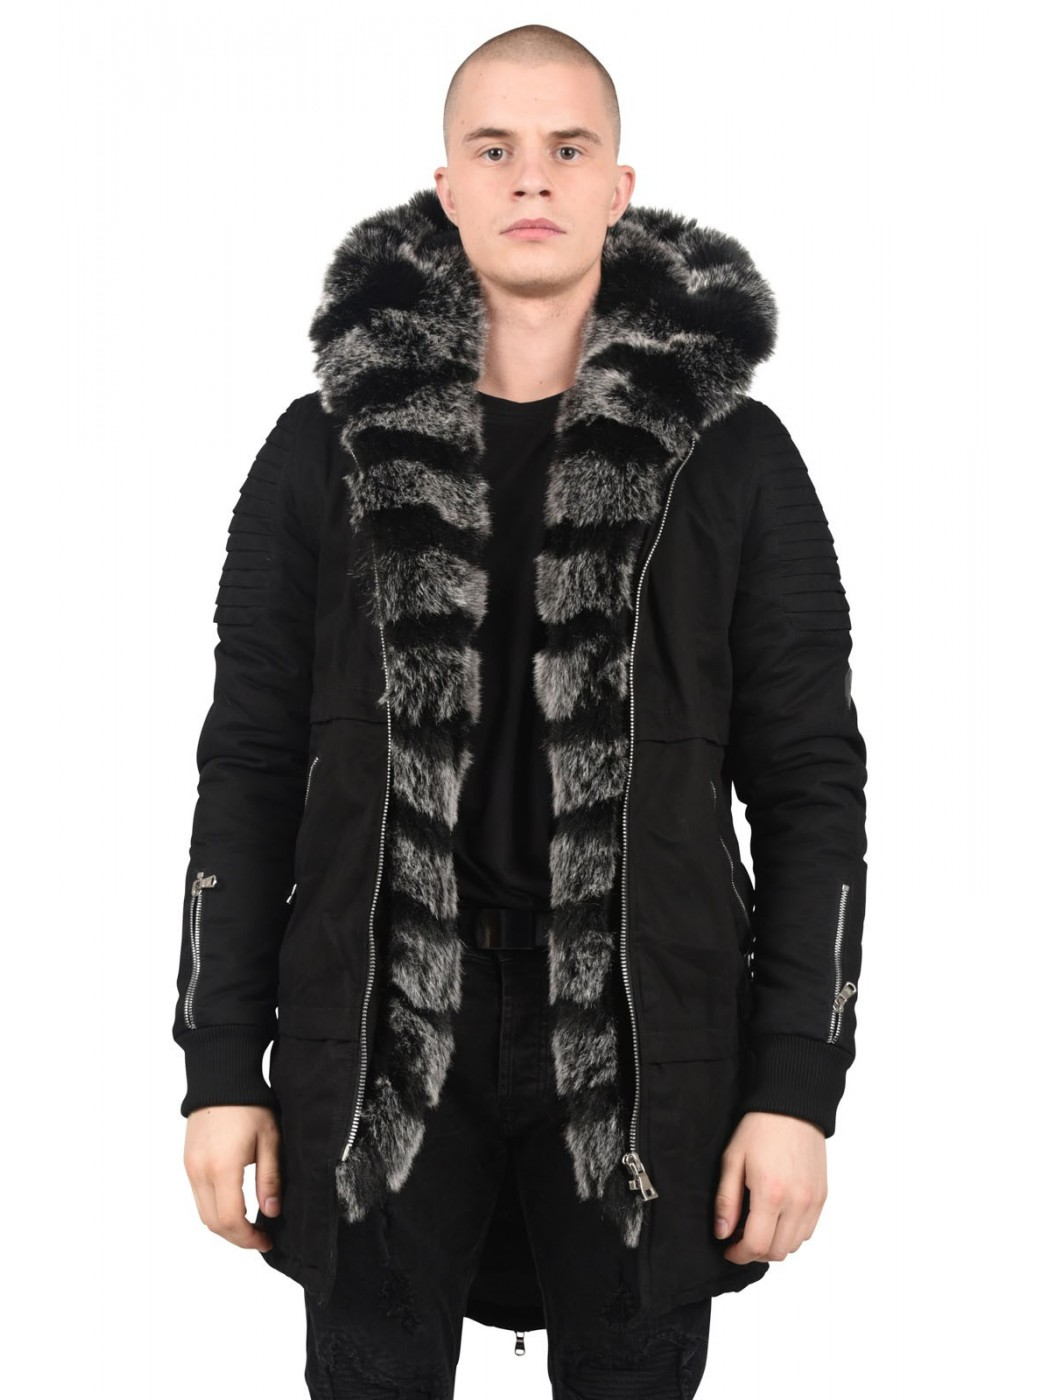 cotton parka jacket with faux fur hood and lining project x paris. Black Bedroom Furniture Sets. Home Design Ideas